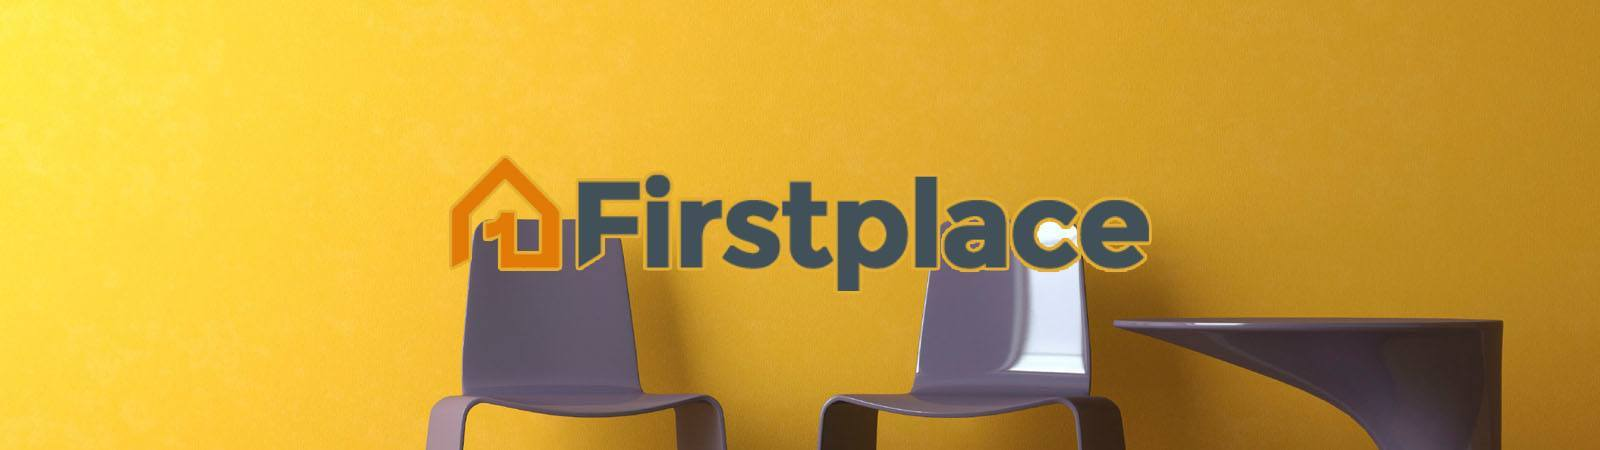 firstplace-banner